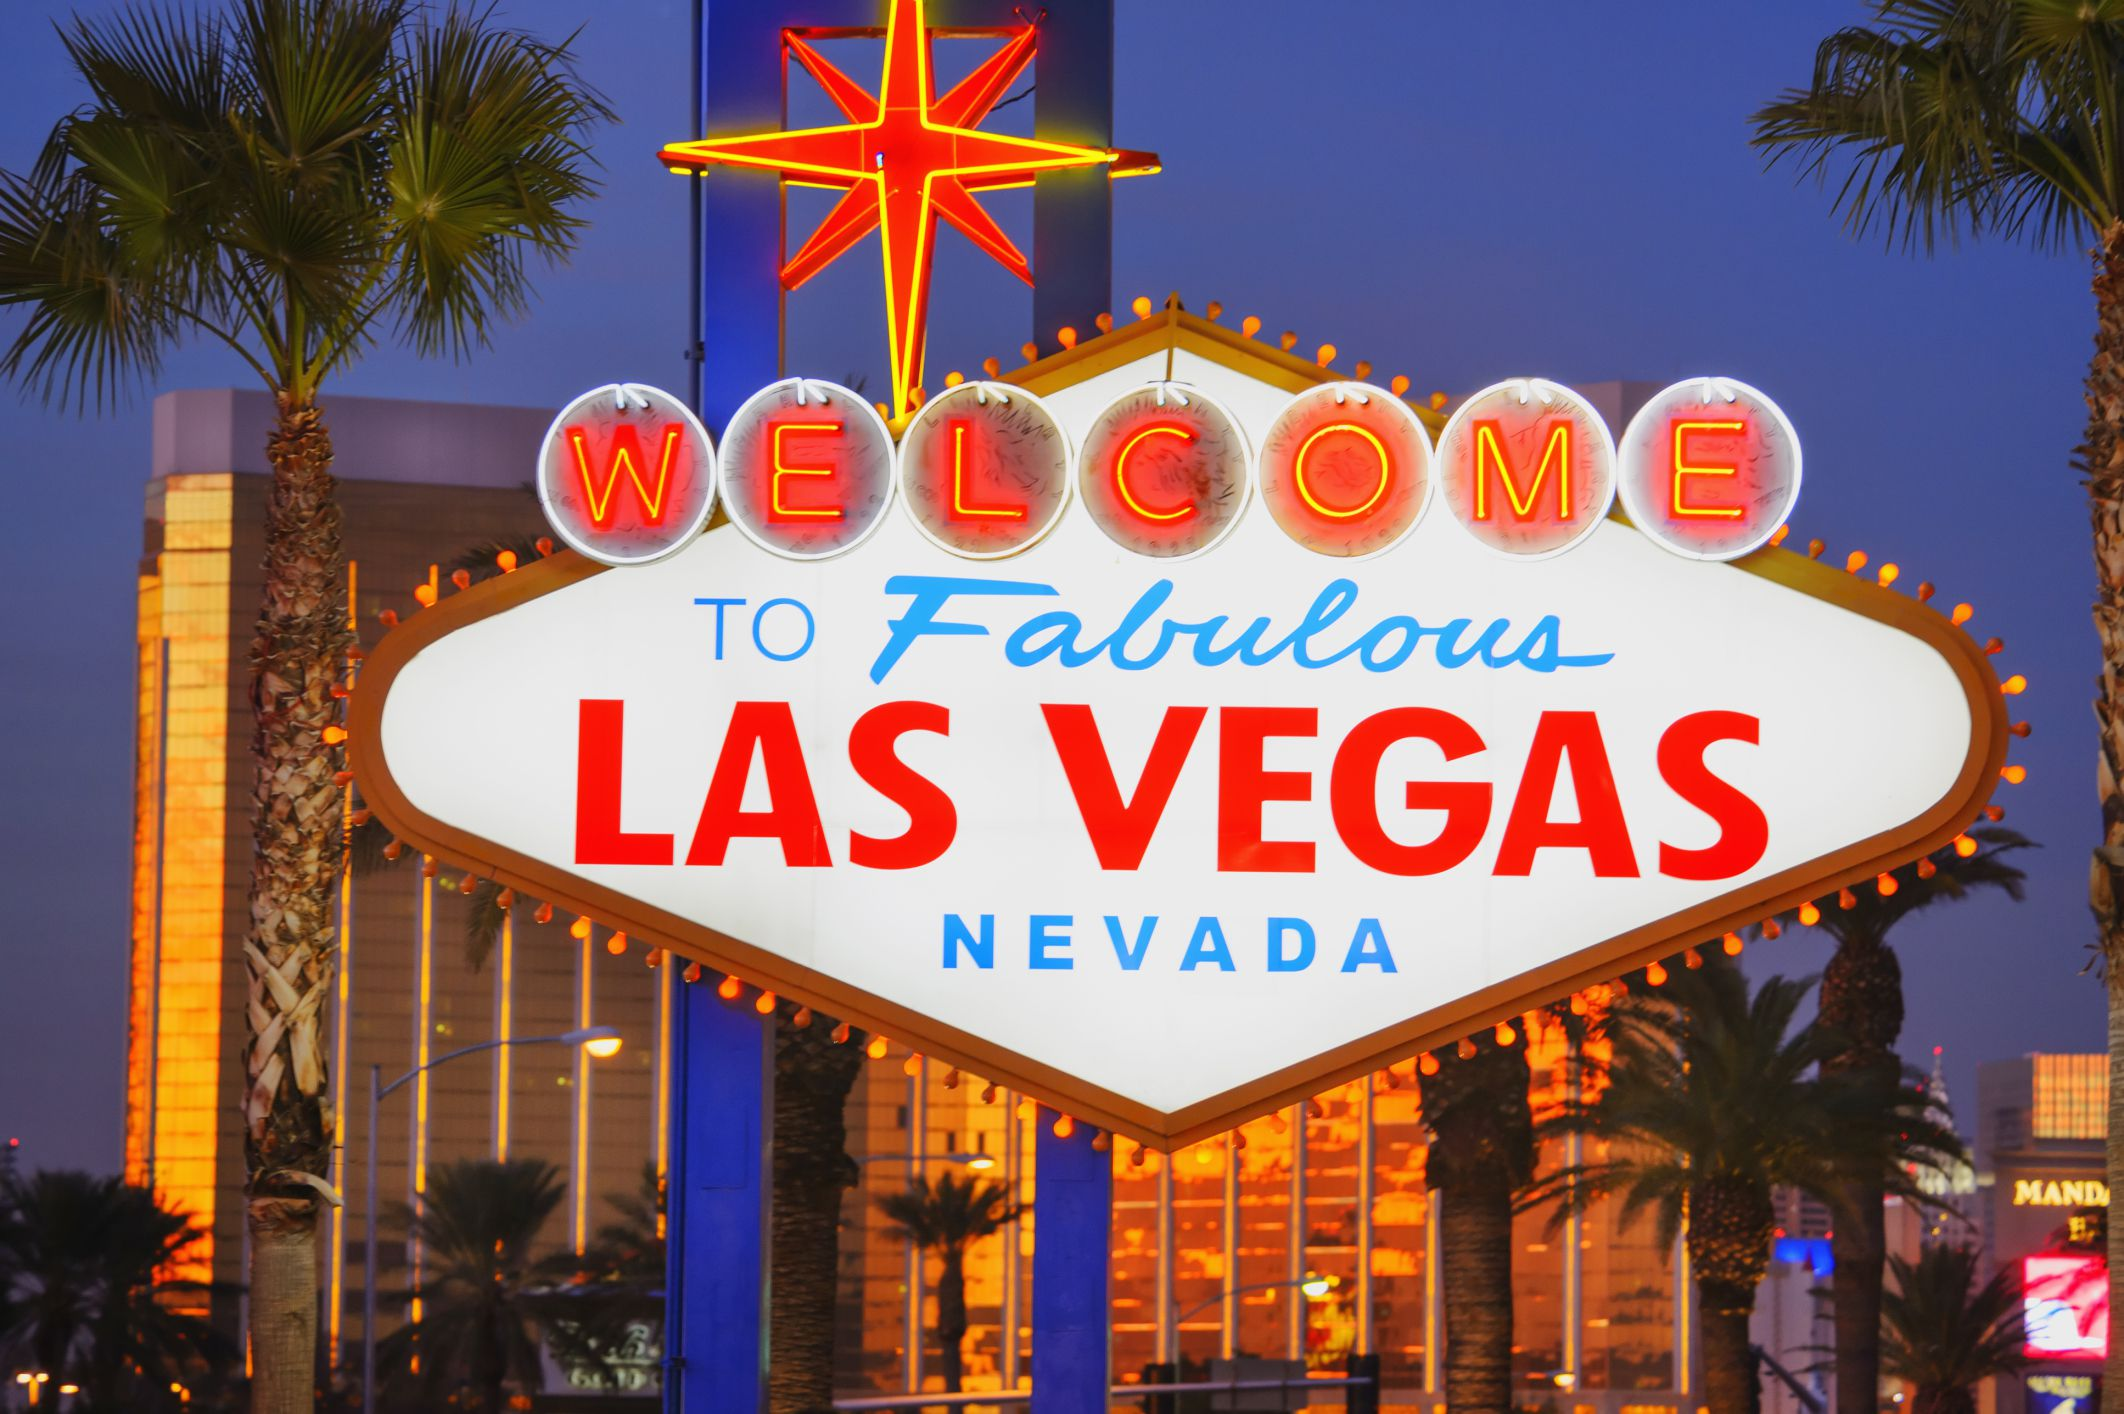 nevada city middle eastern single men Las vegas nv demographics data with  the city with the highest population density  las vegas has percent of single men 25 to 29 in the mid range of other.